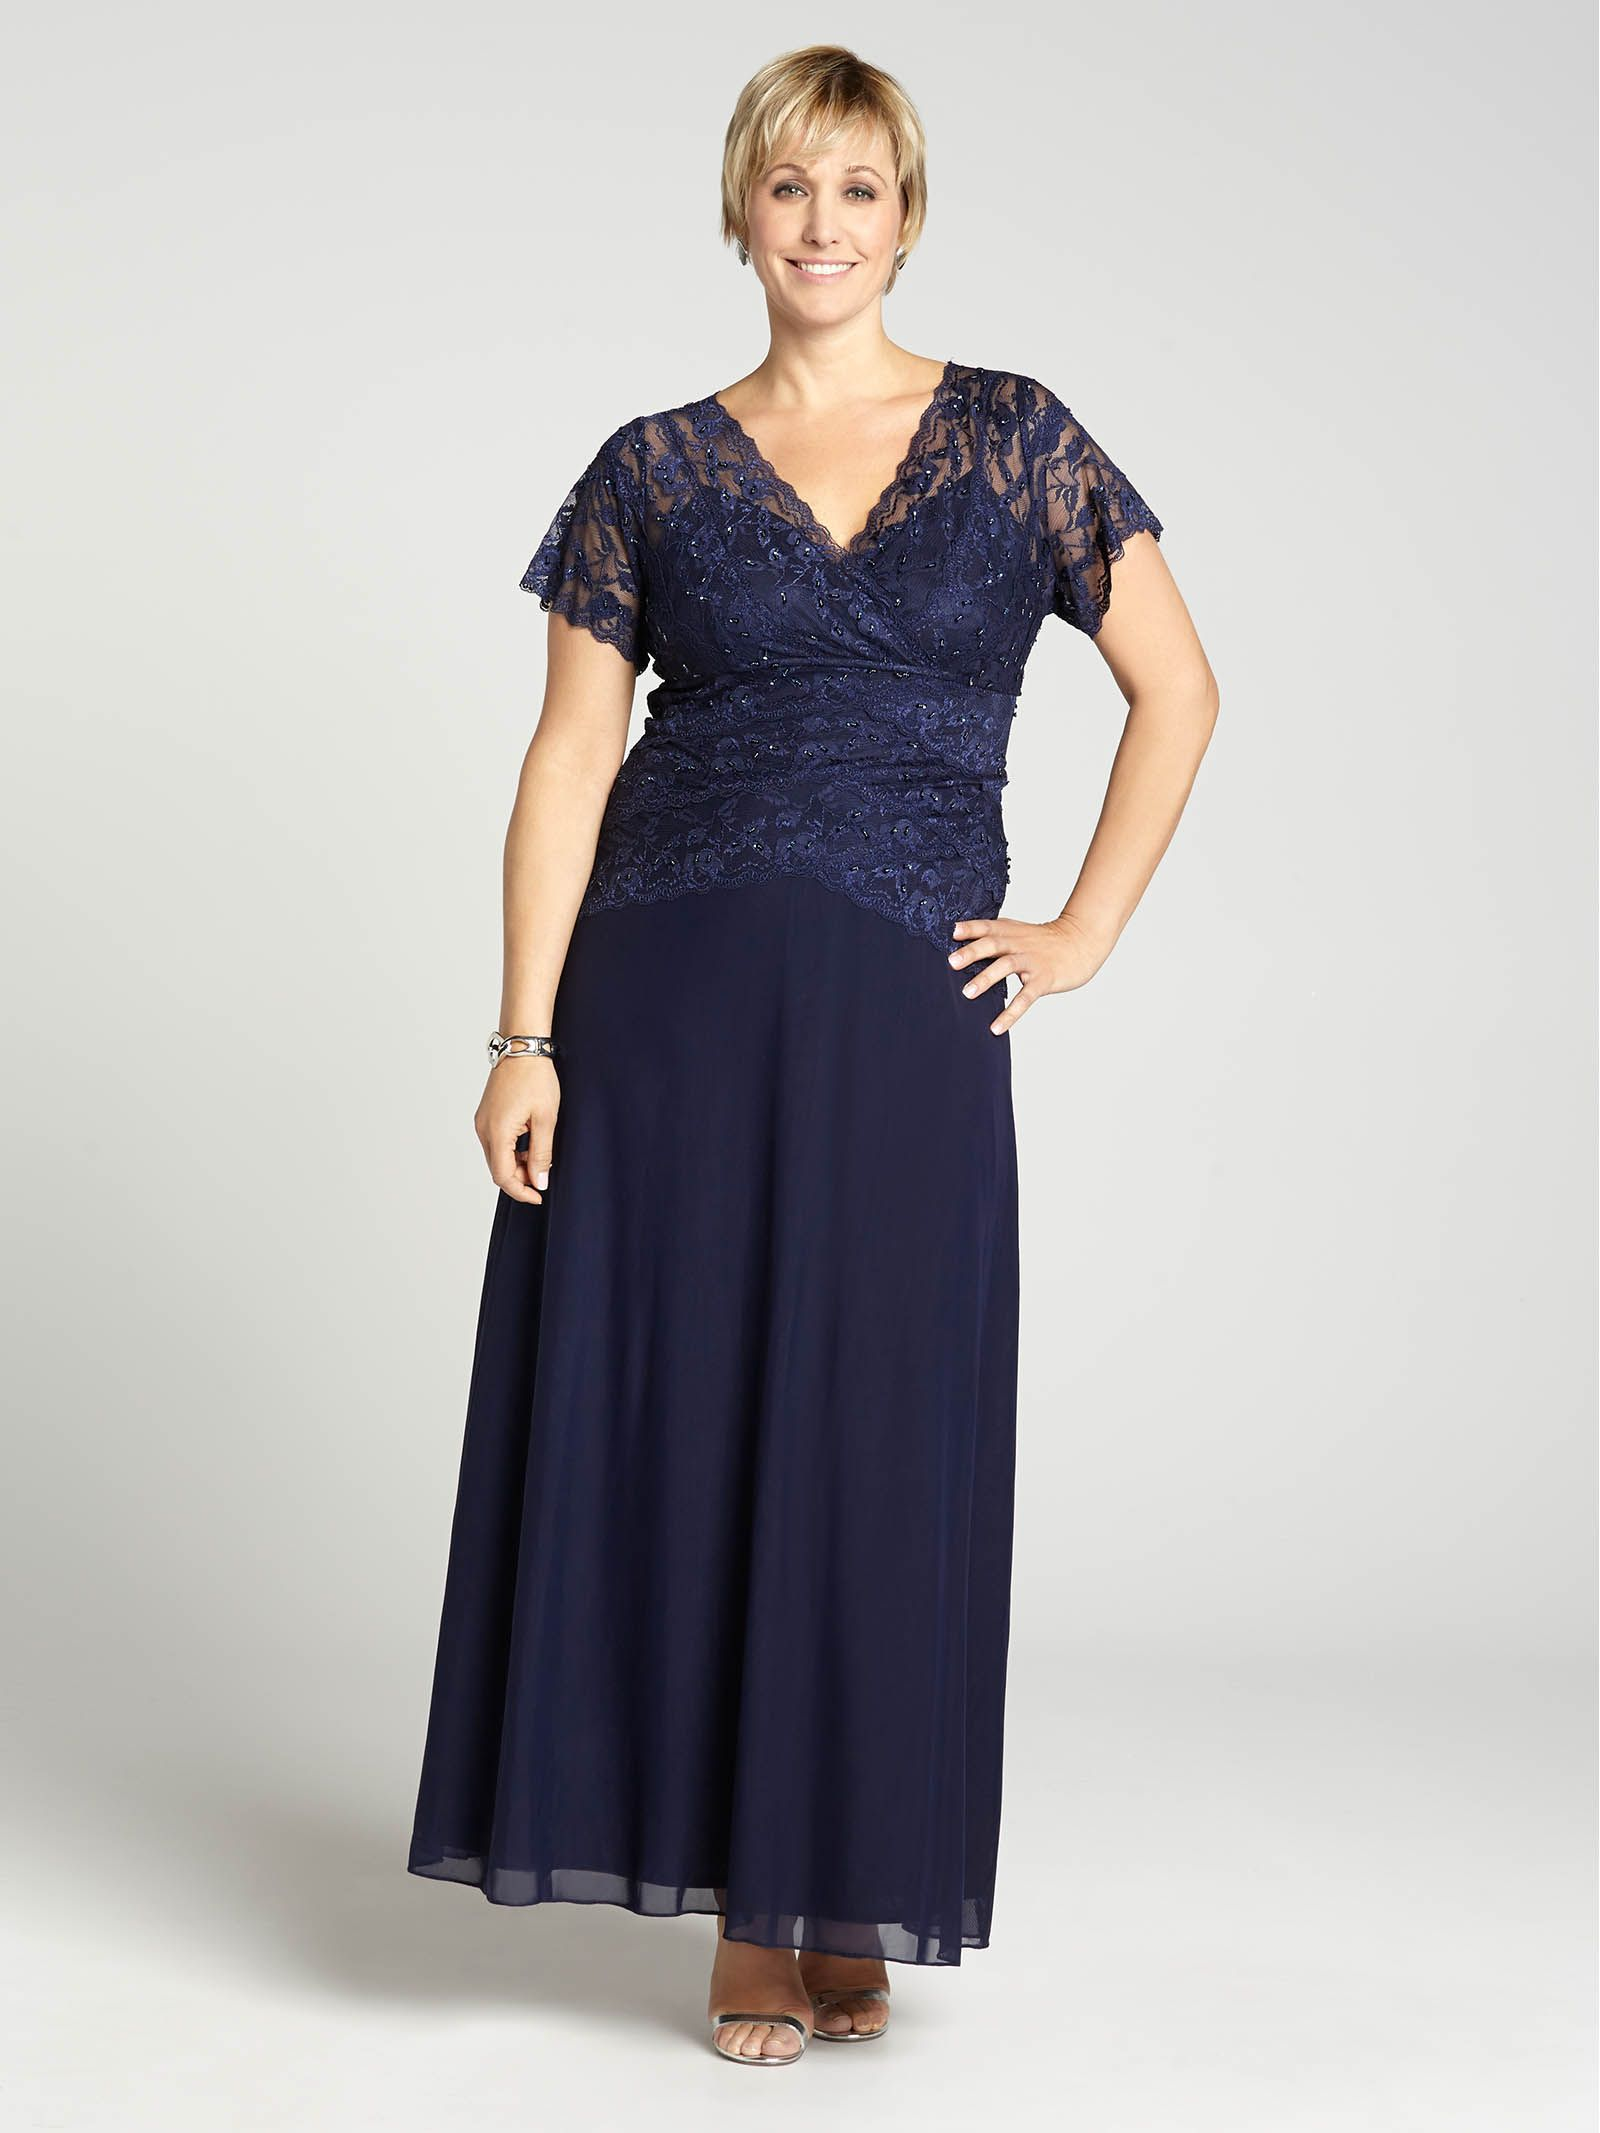 Laura plus lace u sequin bodice flare skirt gown navy